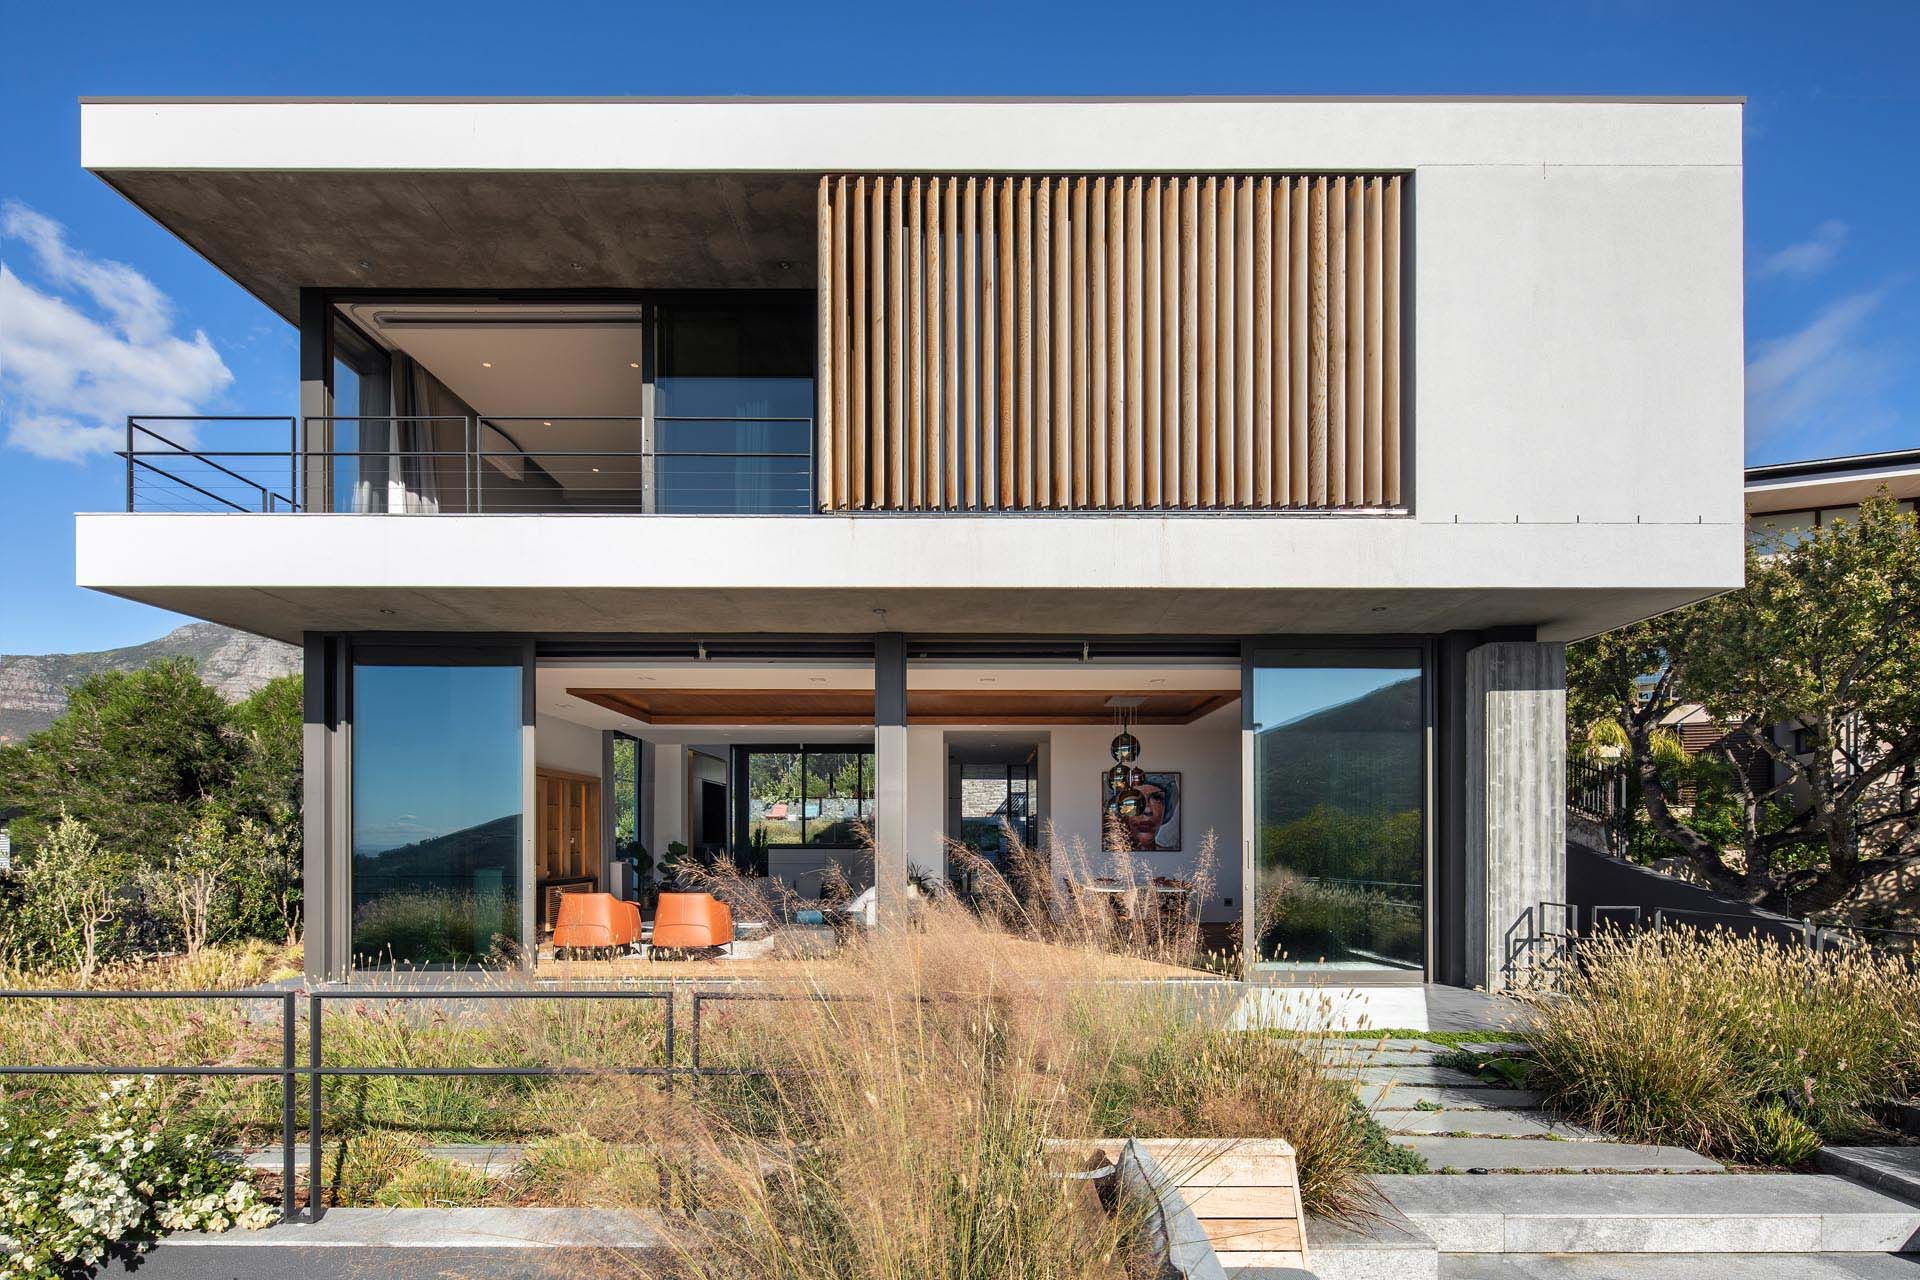 A modern home with an upper level that has wood slats and a covered balcony.